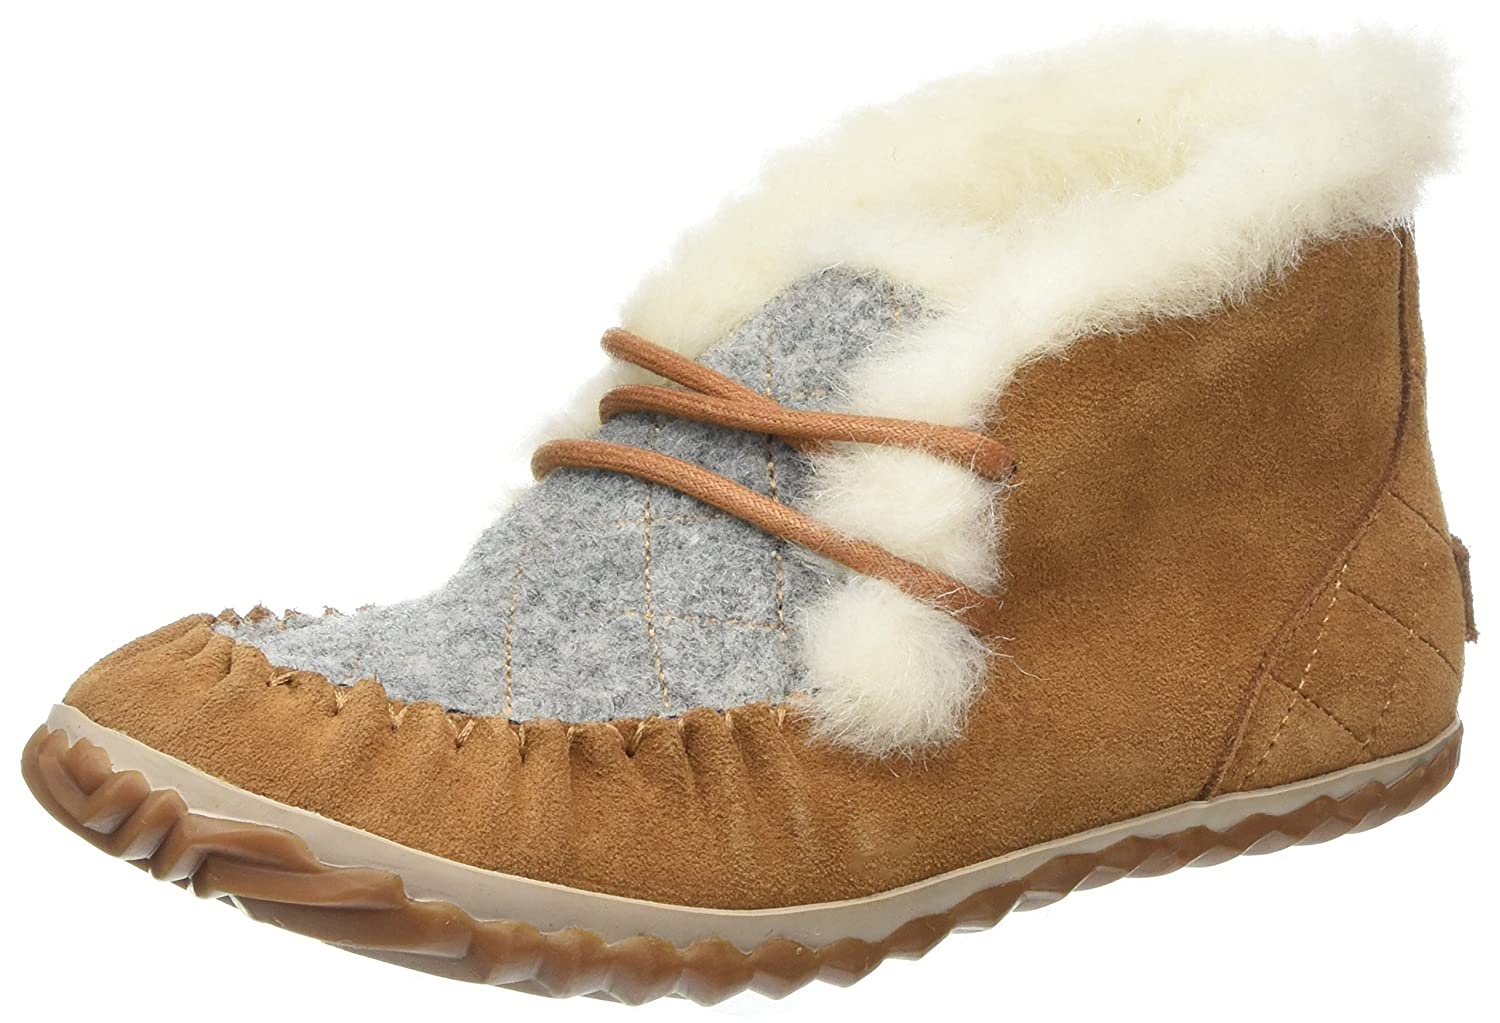 60%OFF Chausson Femme OUT N ABOUT MOC Sorel